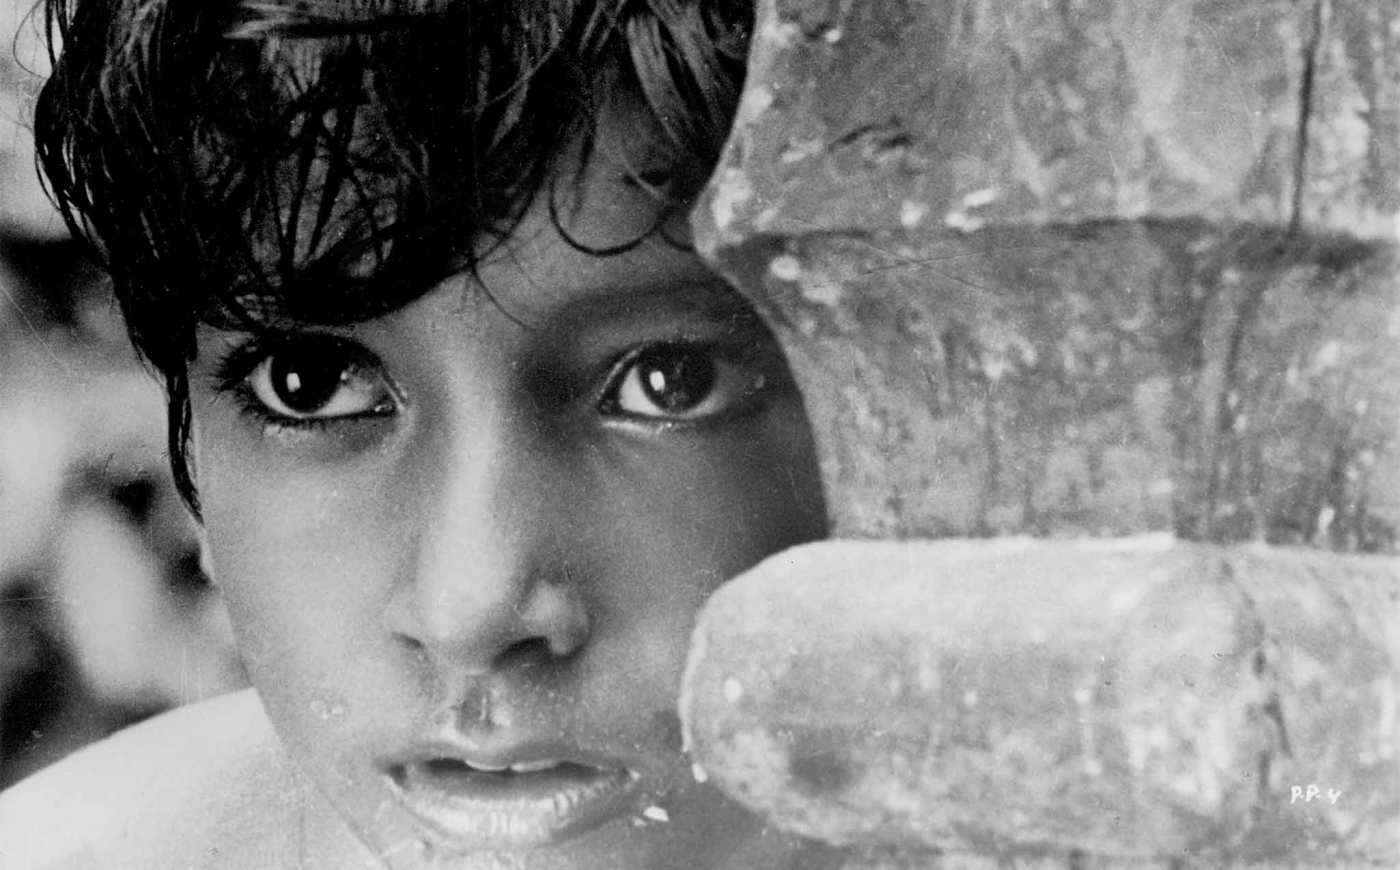 Image Caption: Pather Panchali (1955 India) Directed by Satyajit Ray Shown: Subir Bannerjee—Click to read this article.